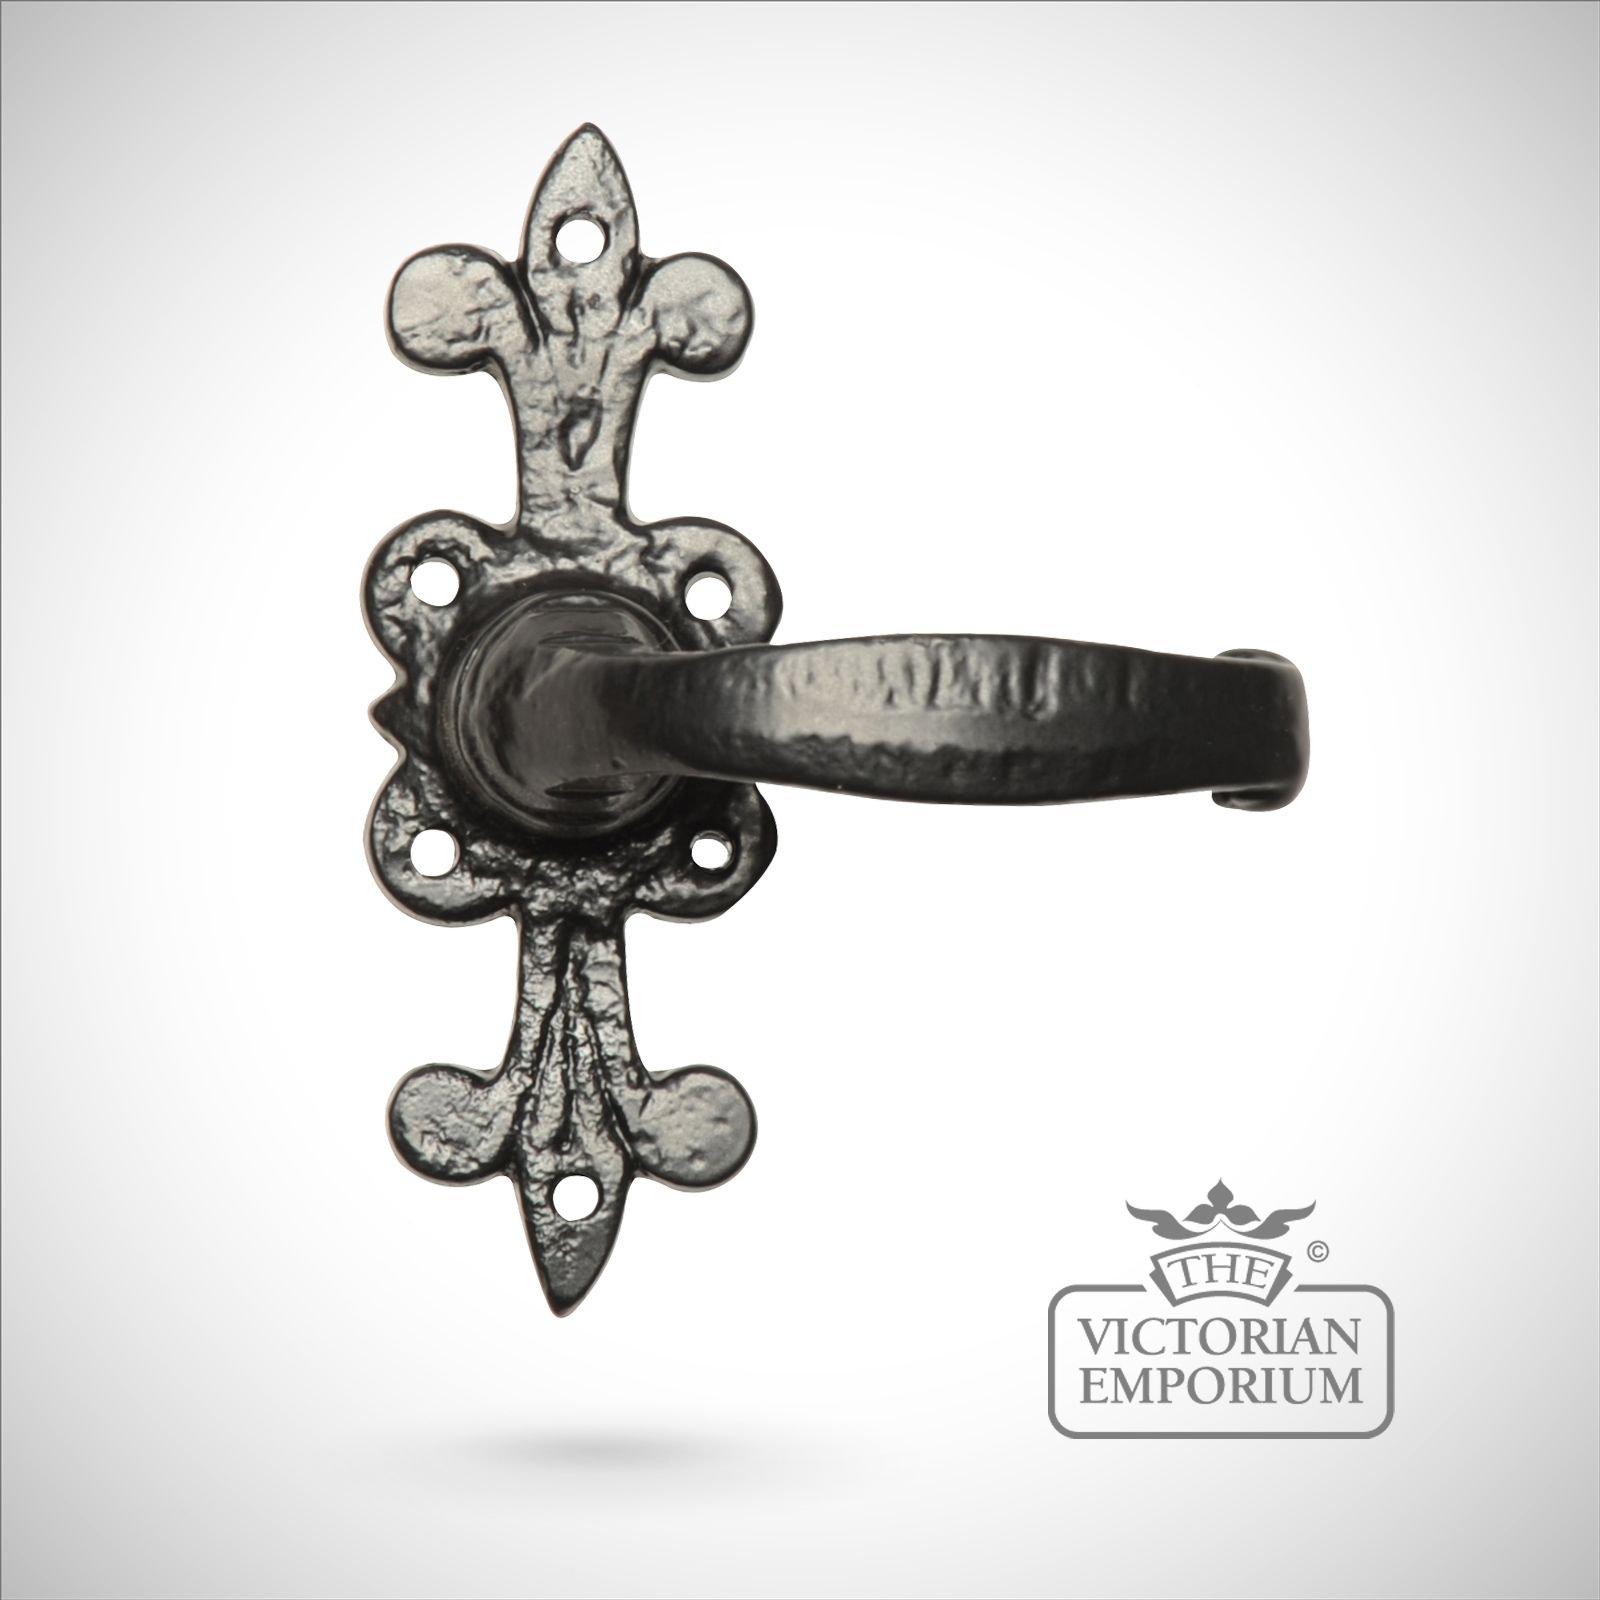 Black Iron Handcrafted Decorative Fleur De Lys Lever Door. Living Room Ceiling Interior Design Ideas. Small Living Room Painting Idea. Laminate Flooring Living Room Pictures. Modern White Living Room Design. Living Room With Chairs No Sofa. Simple Wooden Sofa Set Designs For Living Room. Living Room Wallpaper Designs India. Beautiful Living Room Pictures Ideas